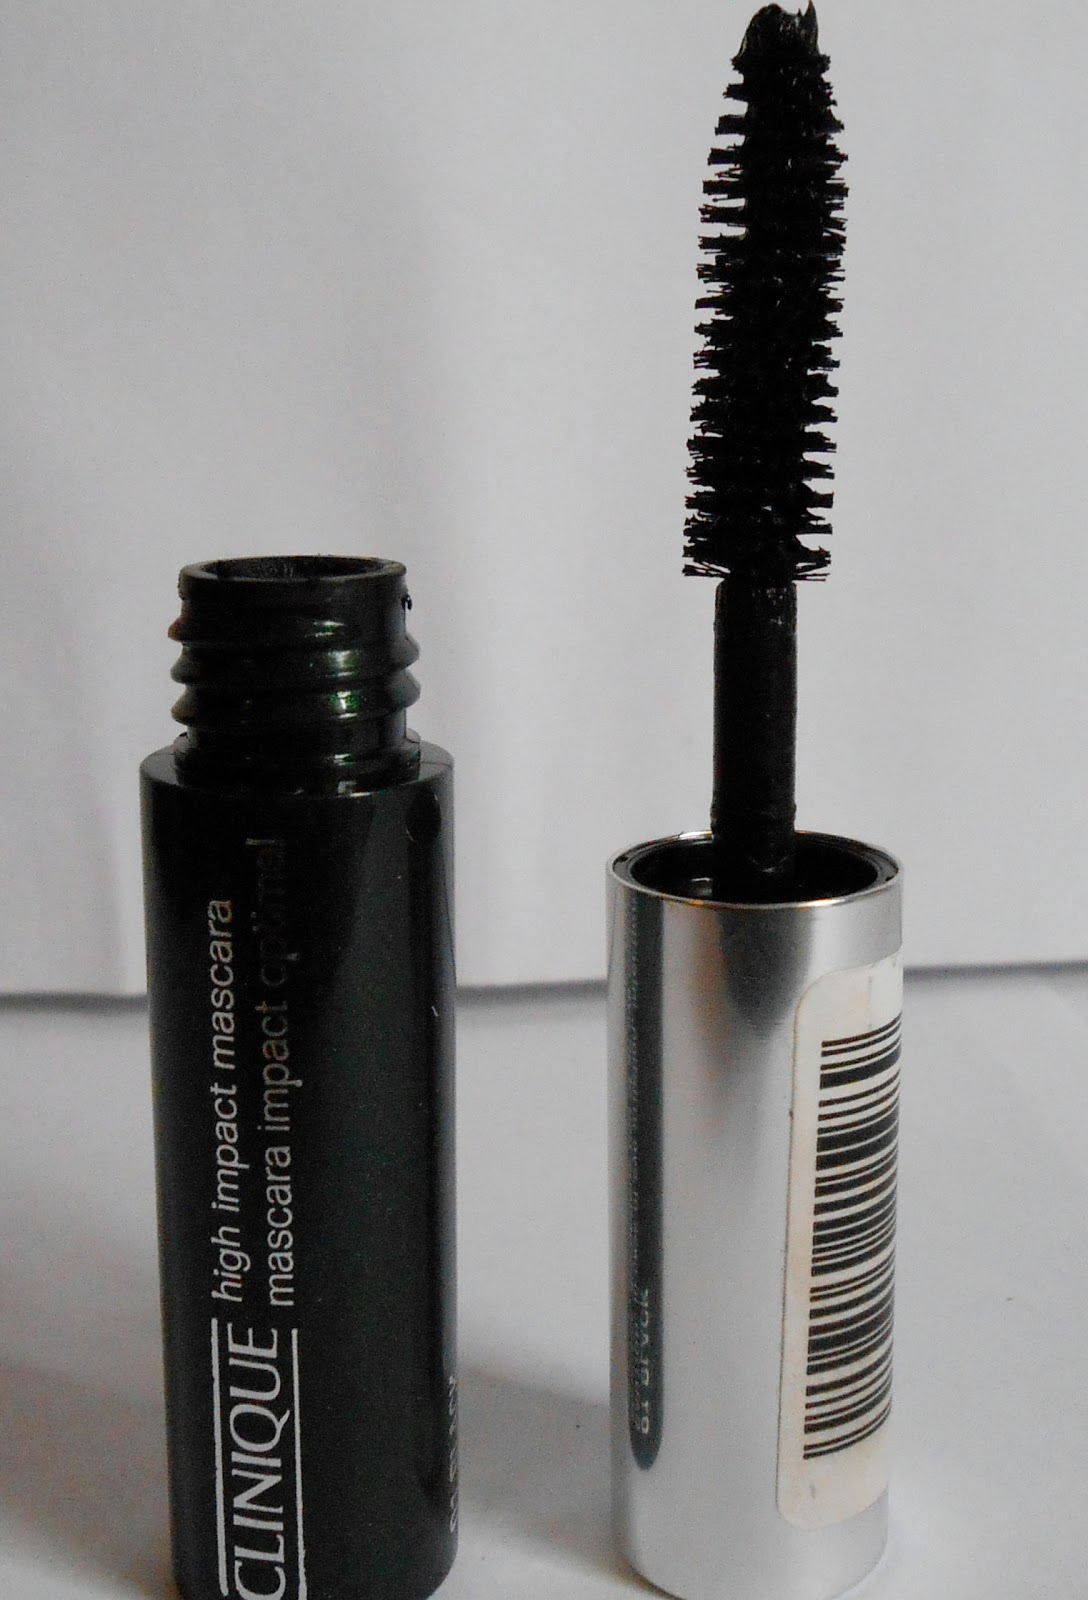 Clinique High Impact Mascara - Nik the Makeup Junkie